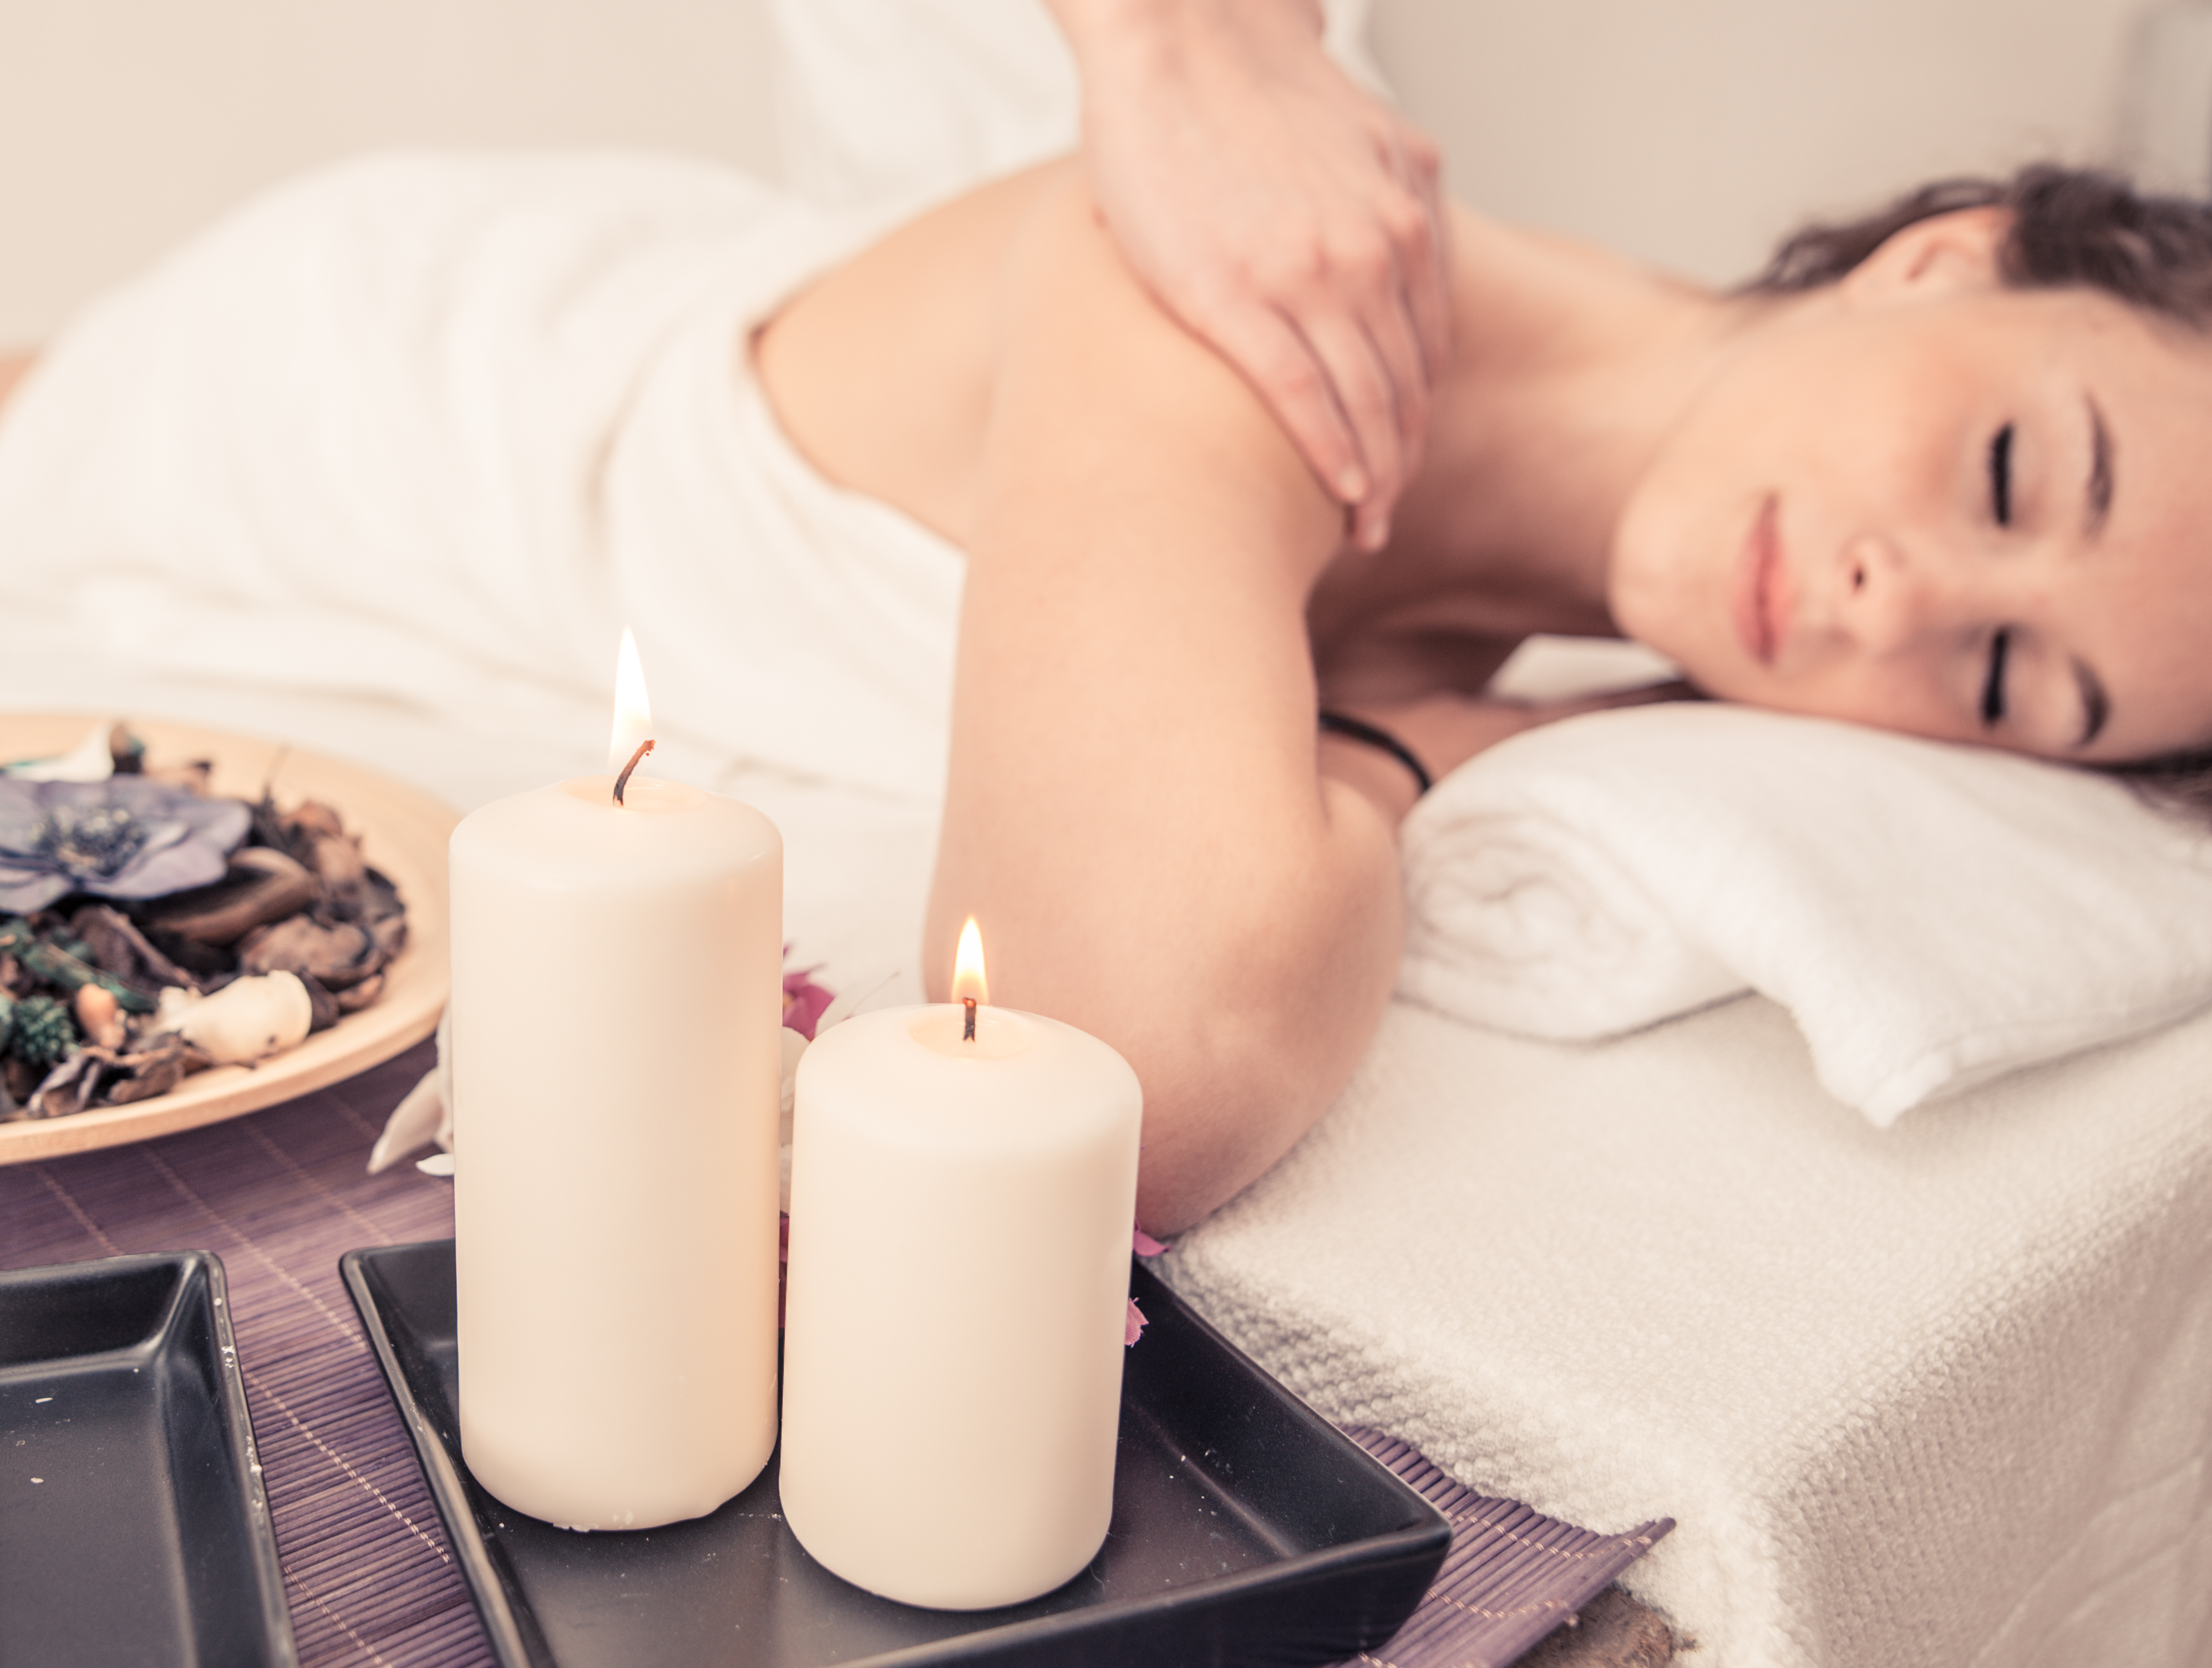 Top 5 Reasons to Receive Regular Massage Therapy